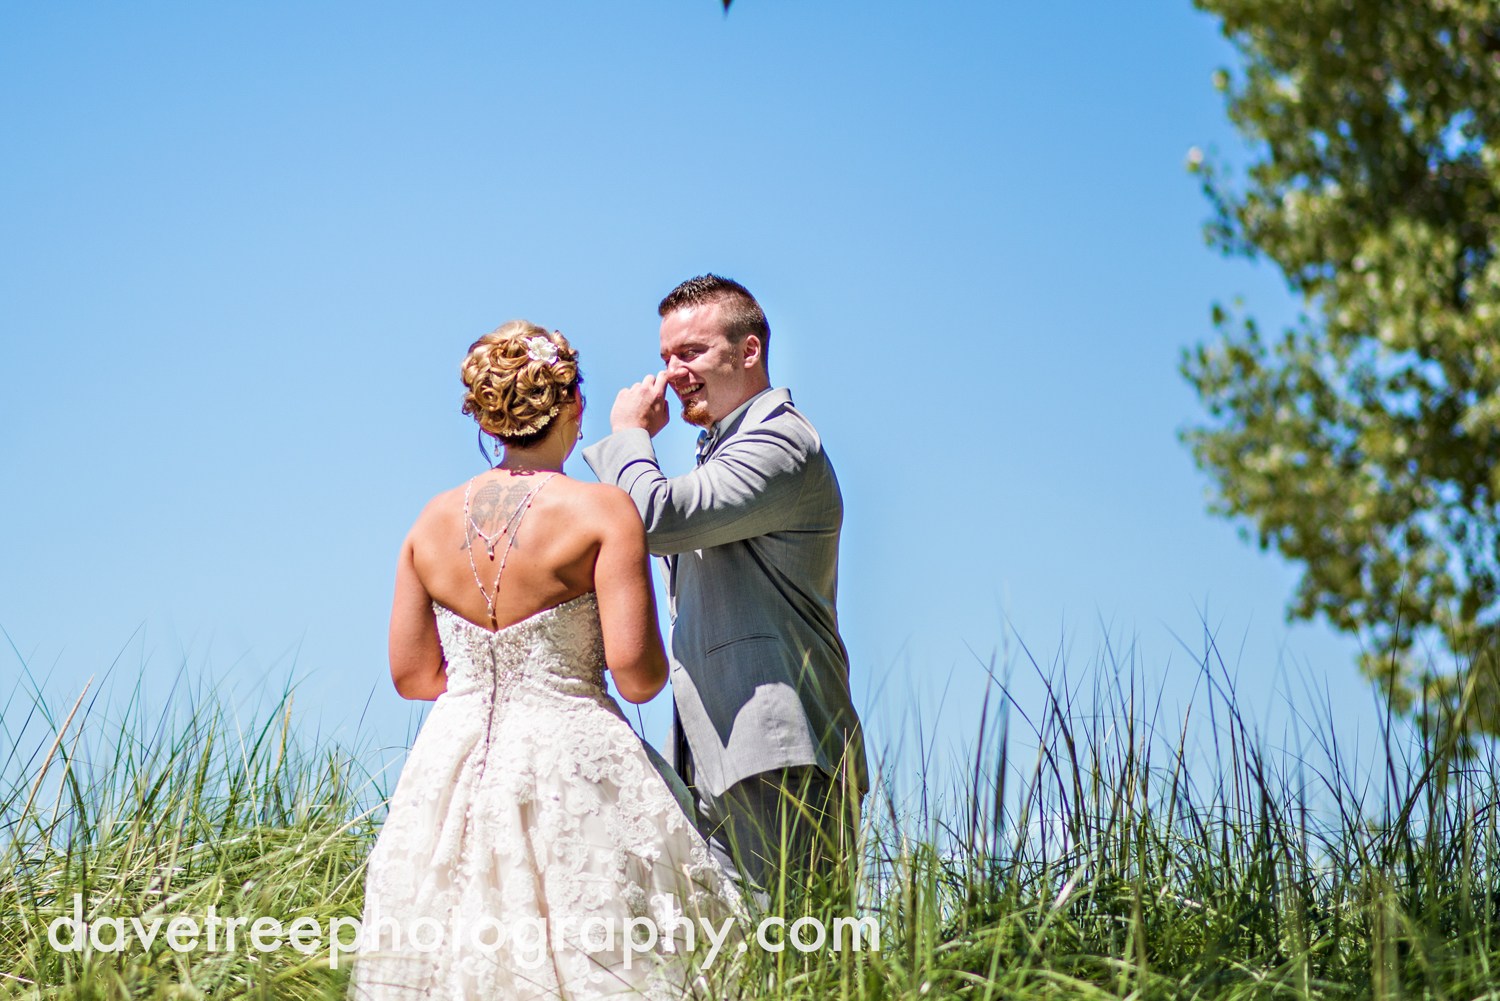 veranda_wedding_photographer_st_joseph_wedding_138.jpg